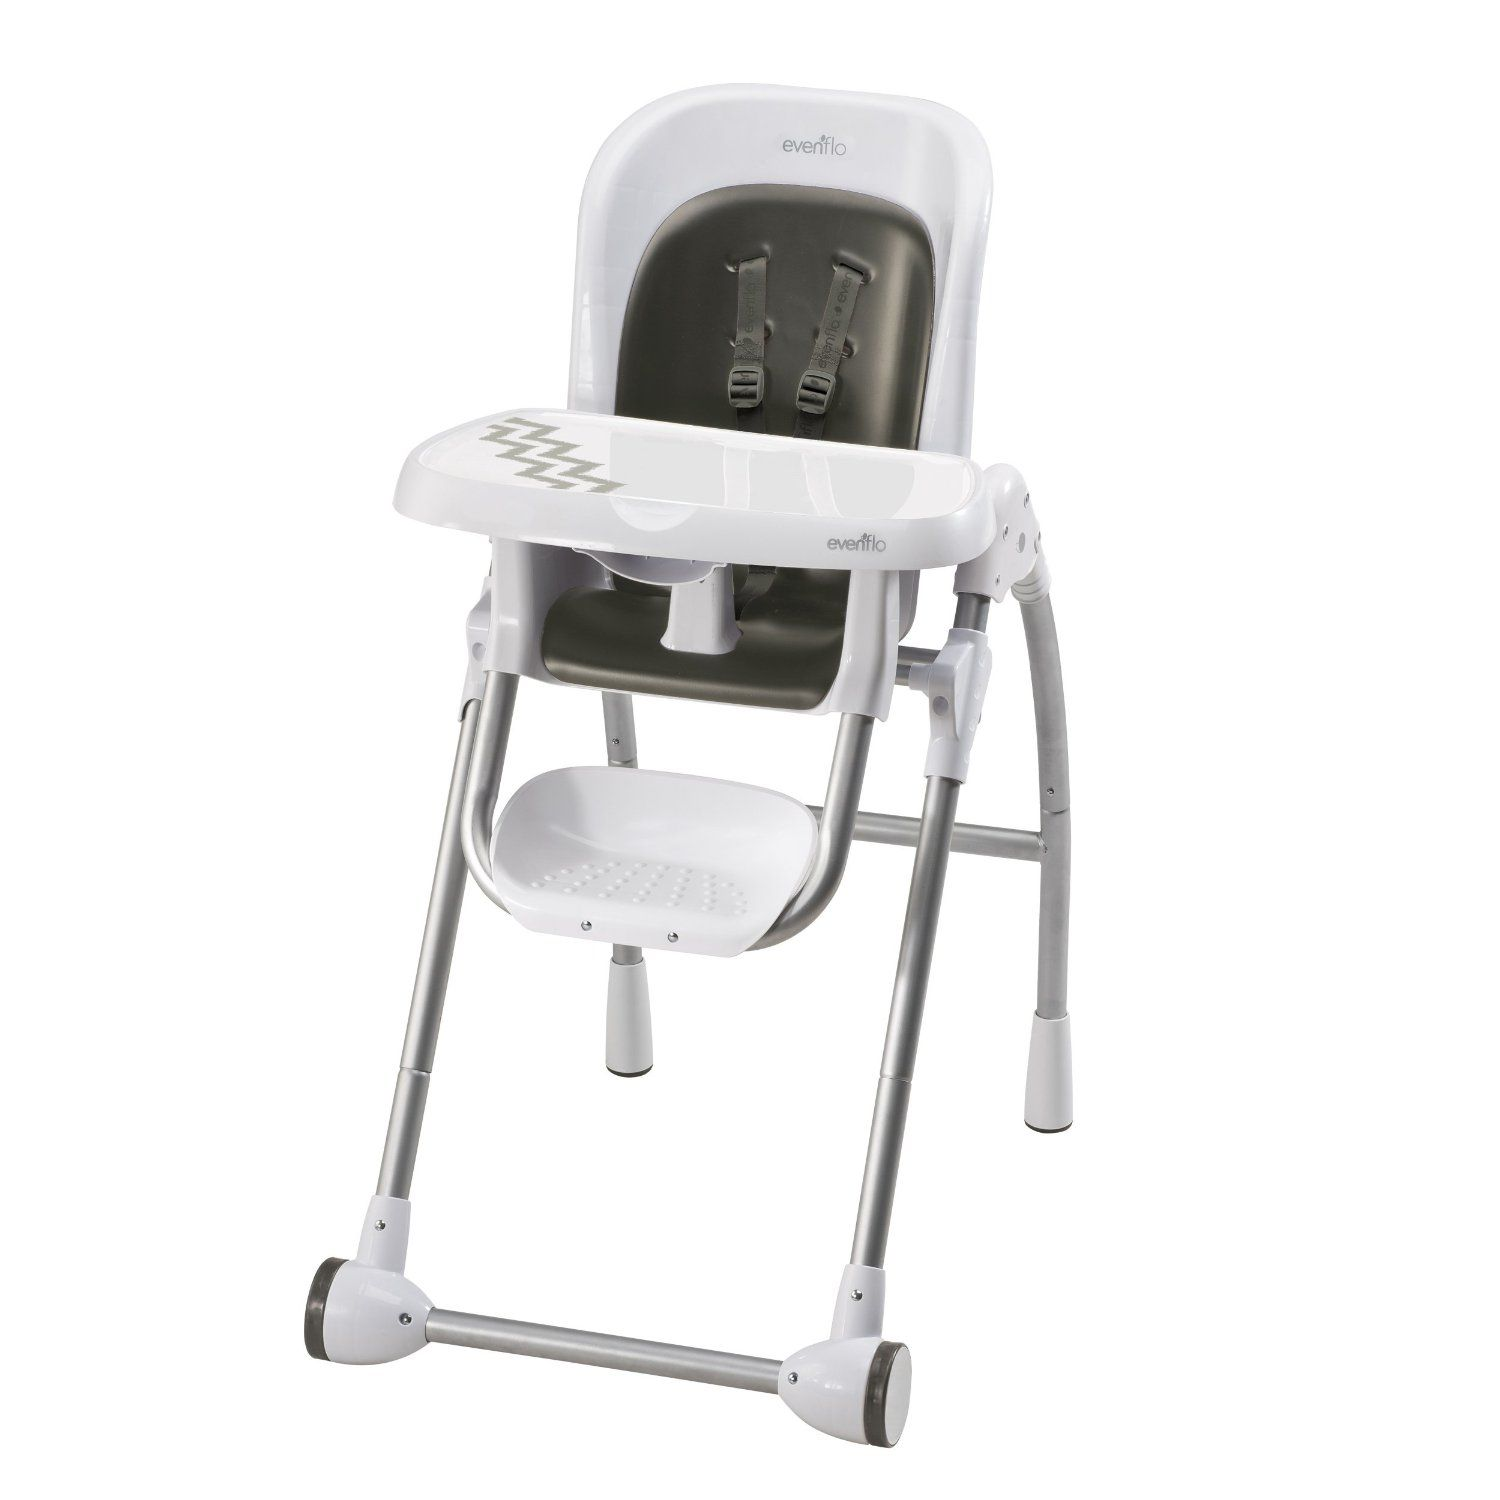 Evenflo Modern Kitchen High Chair In Sante Fe Sunset $59 reg $99